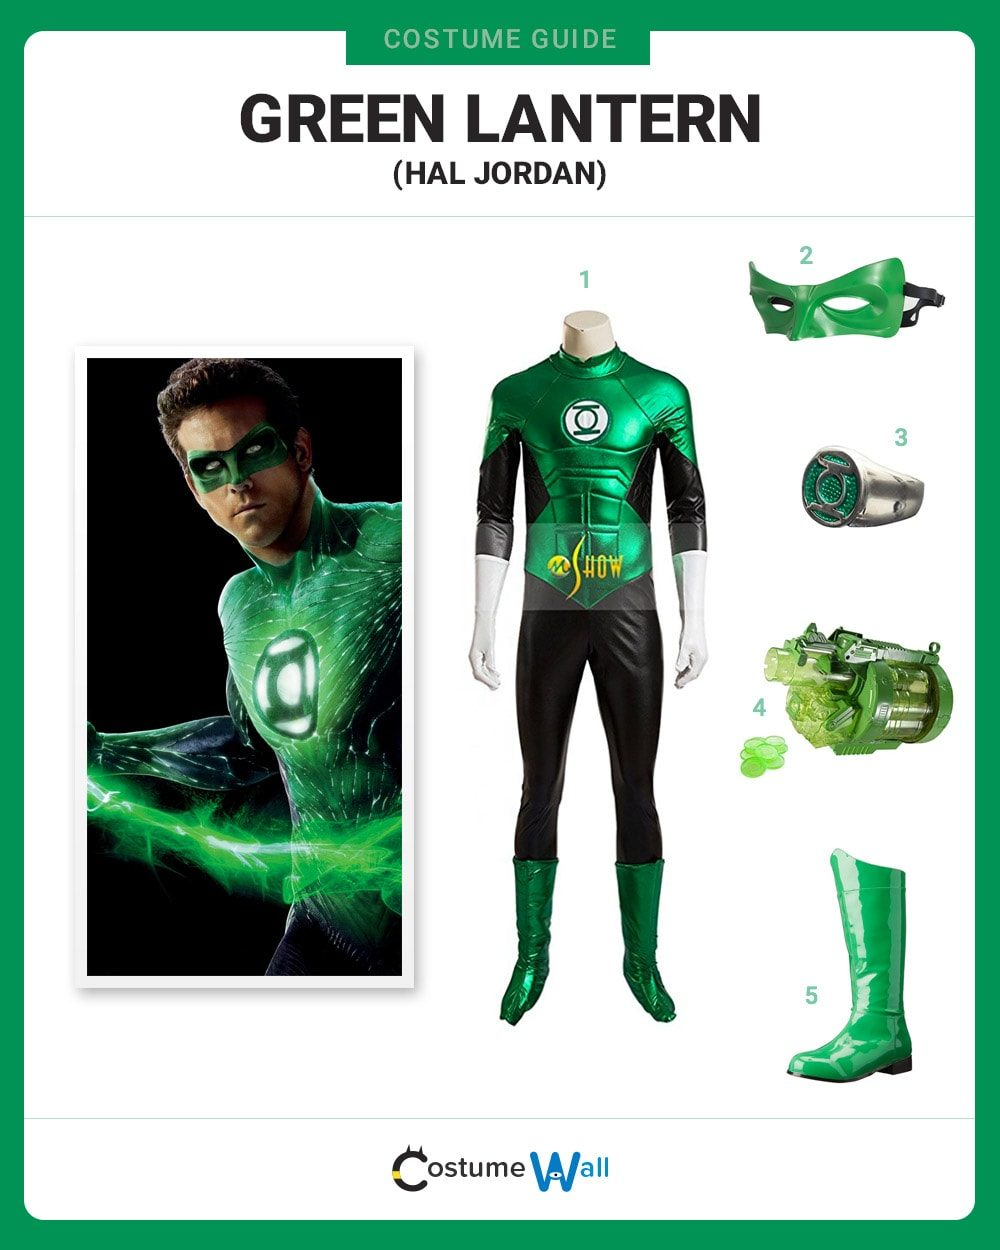 Green Lantern Costume Guide